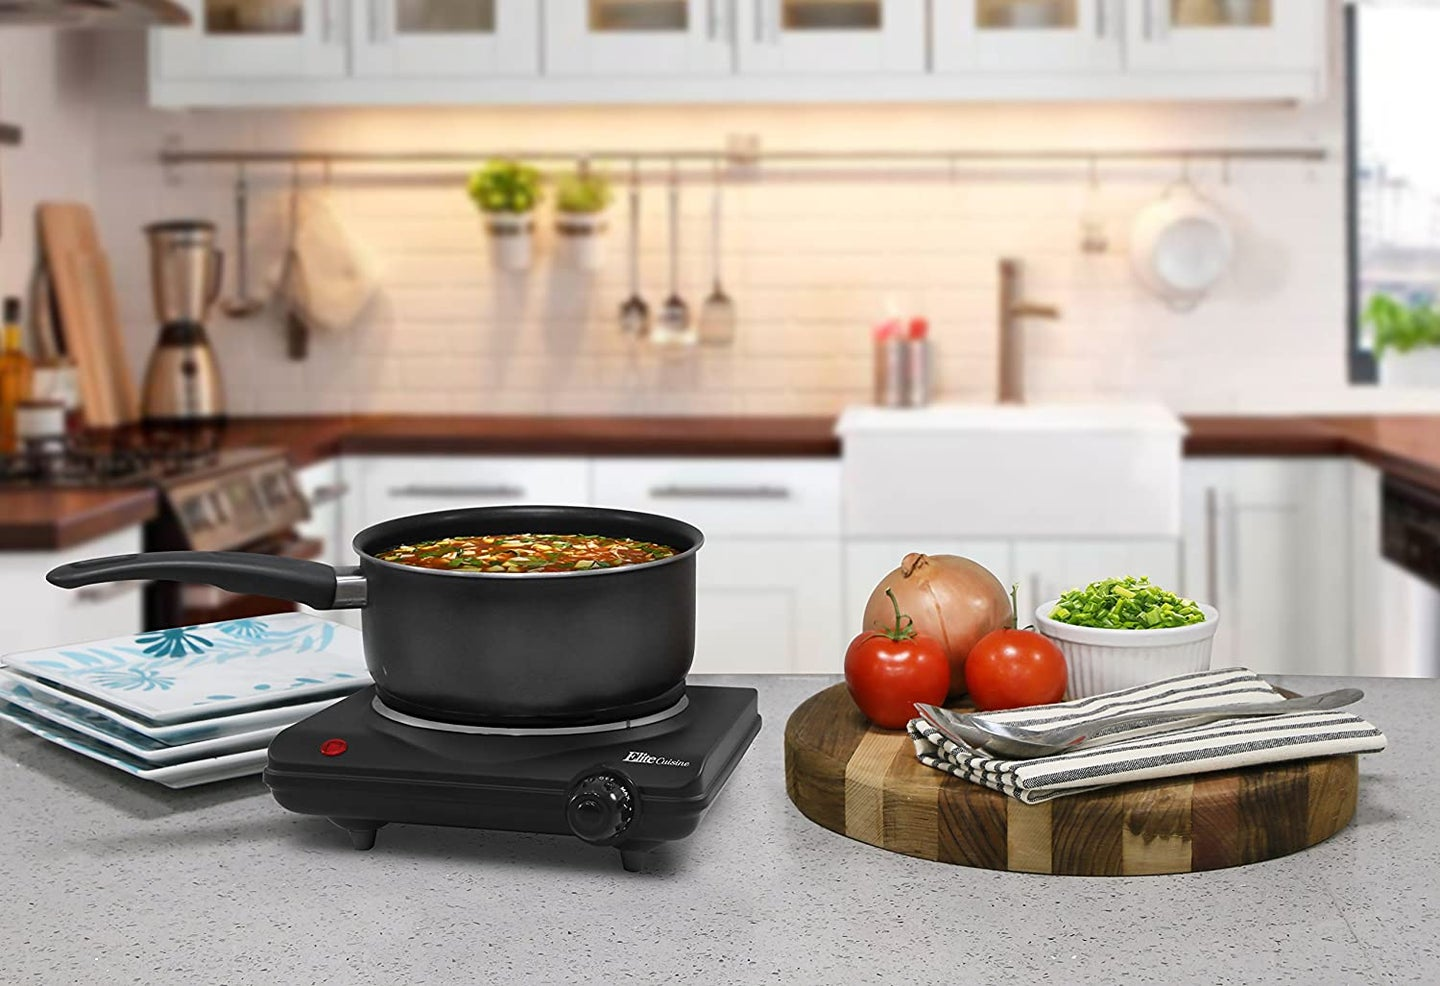 induction cooktop on a kitchen counter with plates and vegetables